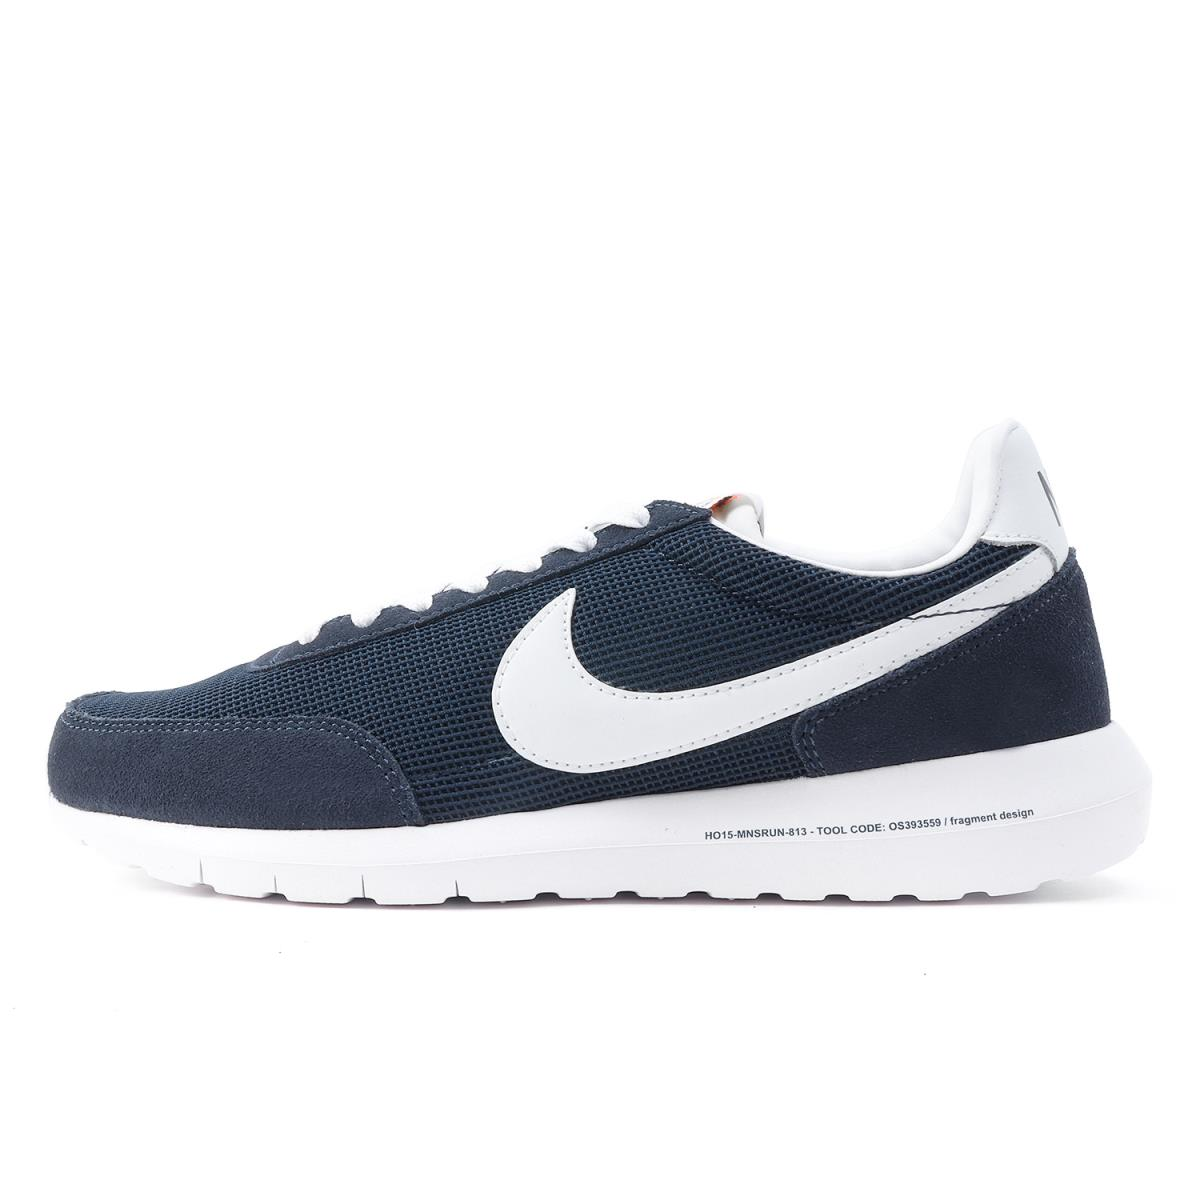 ad998e9d56bf7 ... amazon nike nike x fragment roshe daybreak 826669 410 navy x white  us927cm dfe4a 0af4d